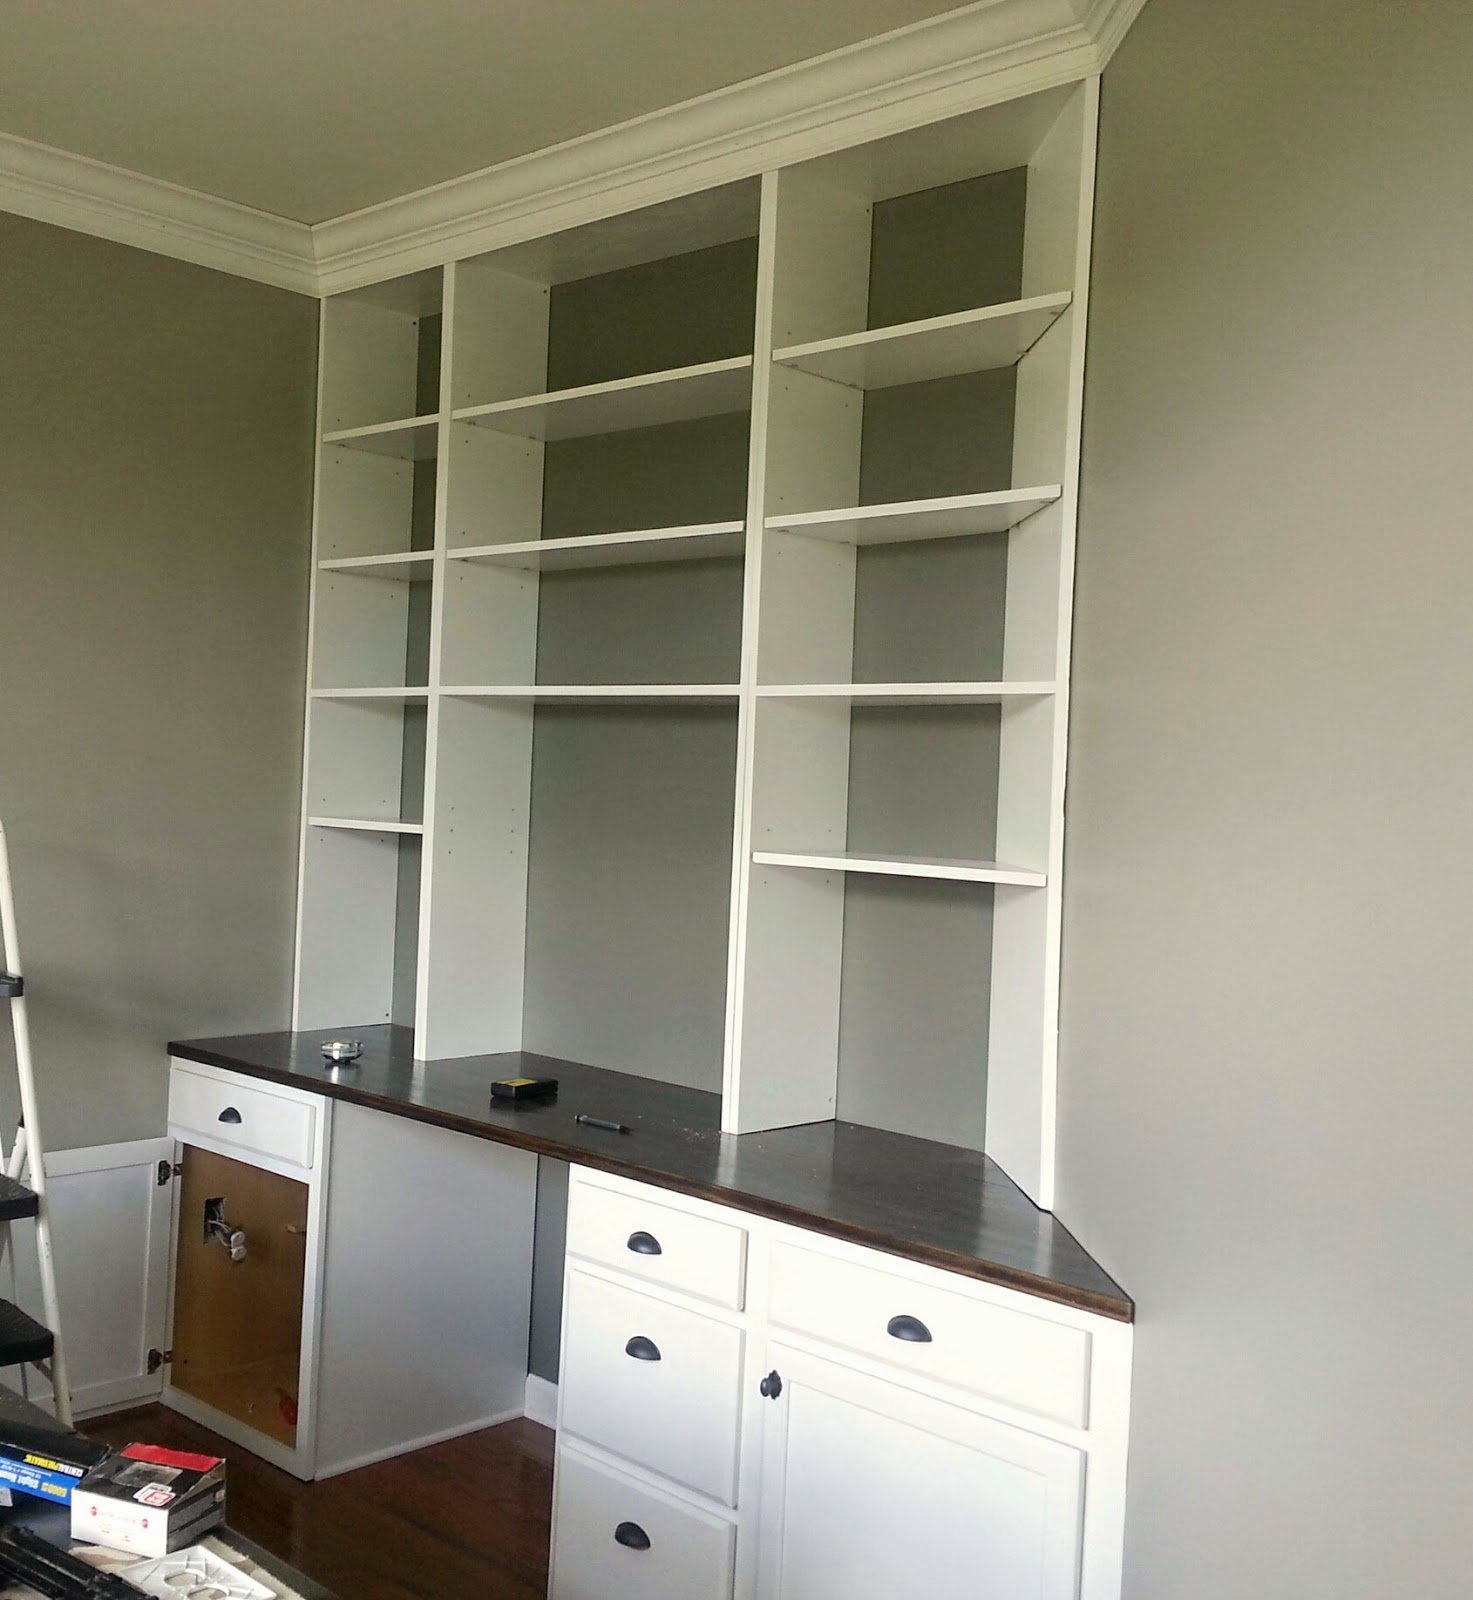 Home Office Built-In Bookshelves